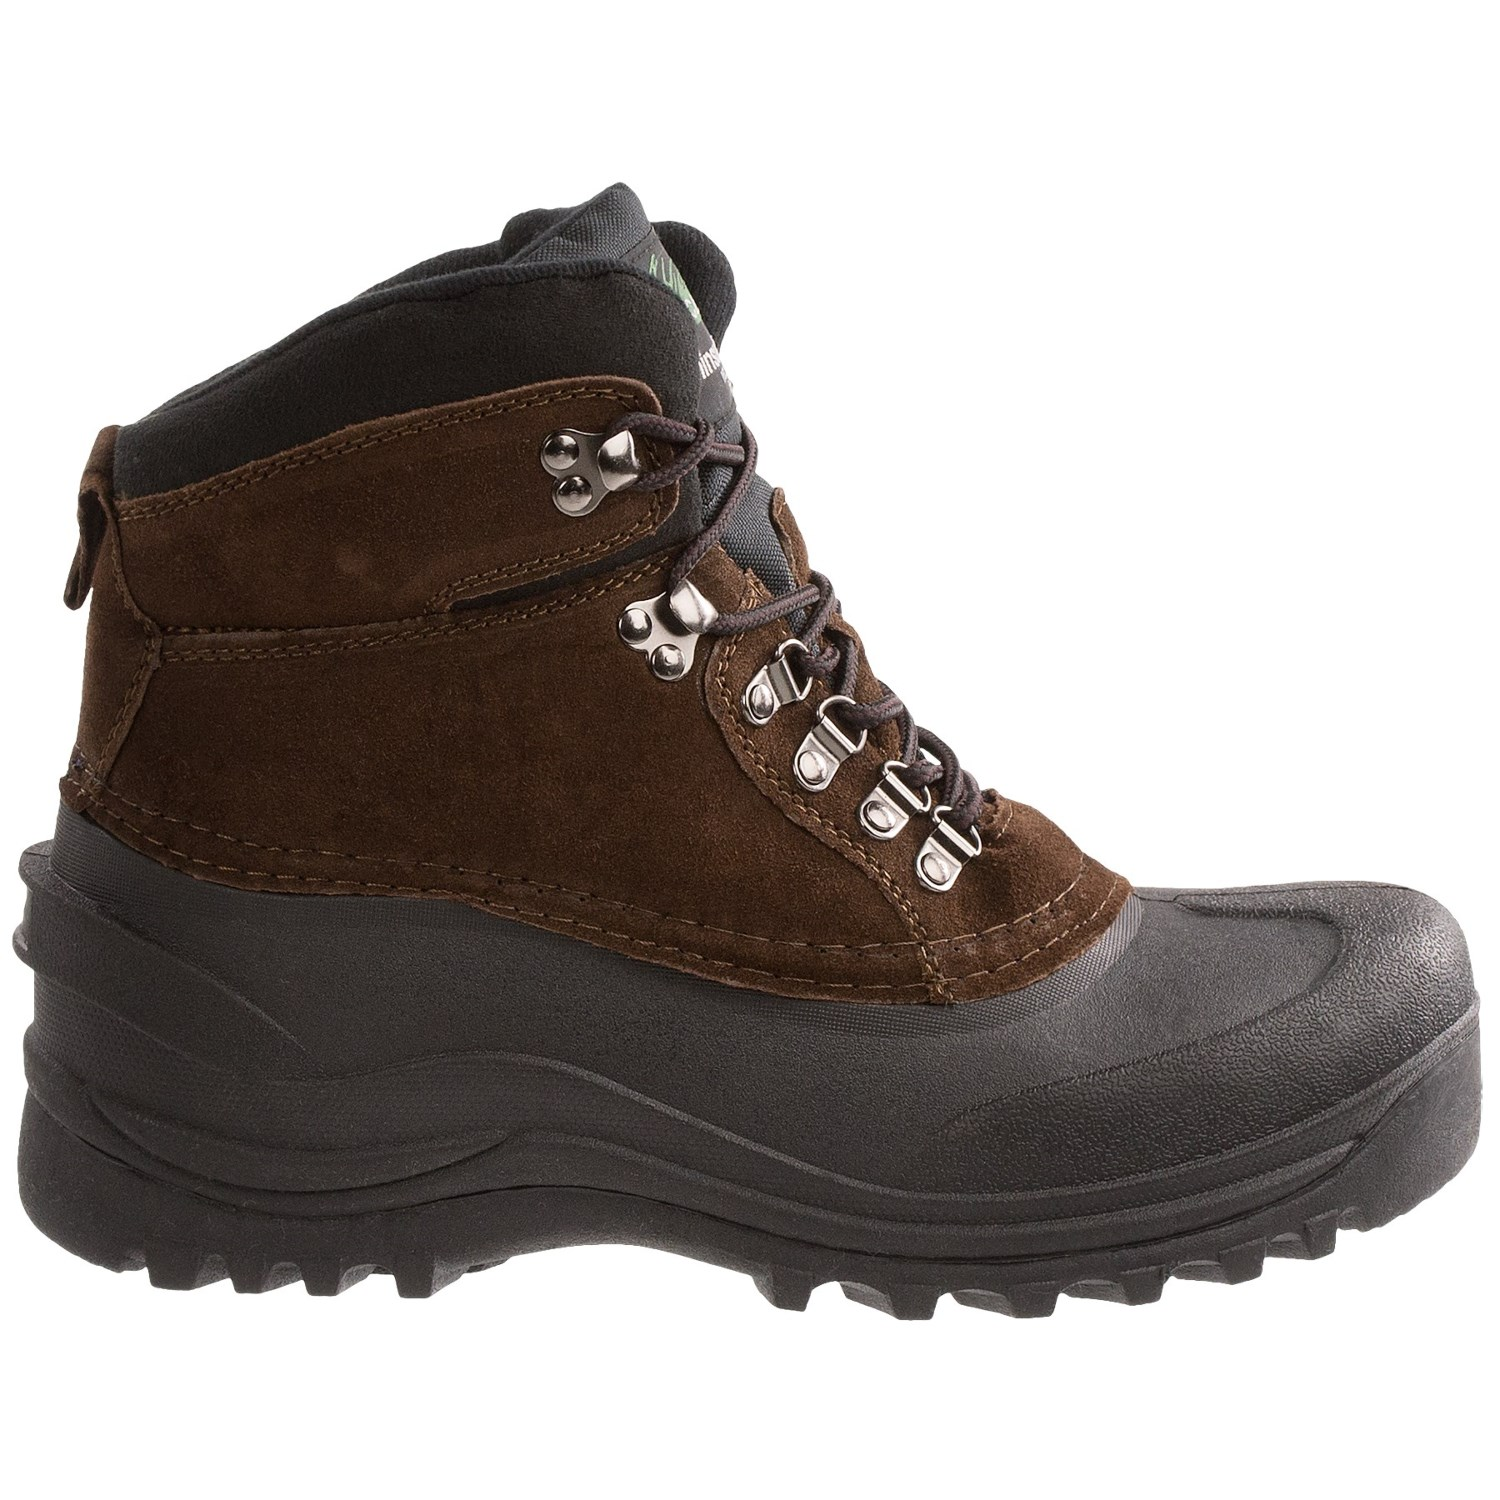 Mens Waterproof Snow Boots Clearance | Homewood Mountain Ski Resort